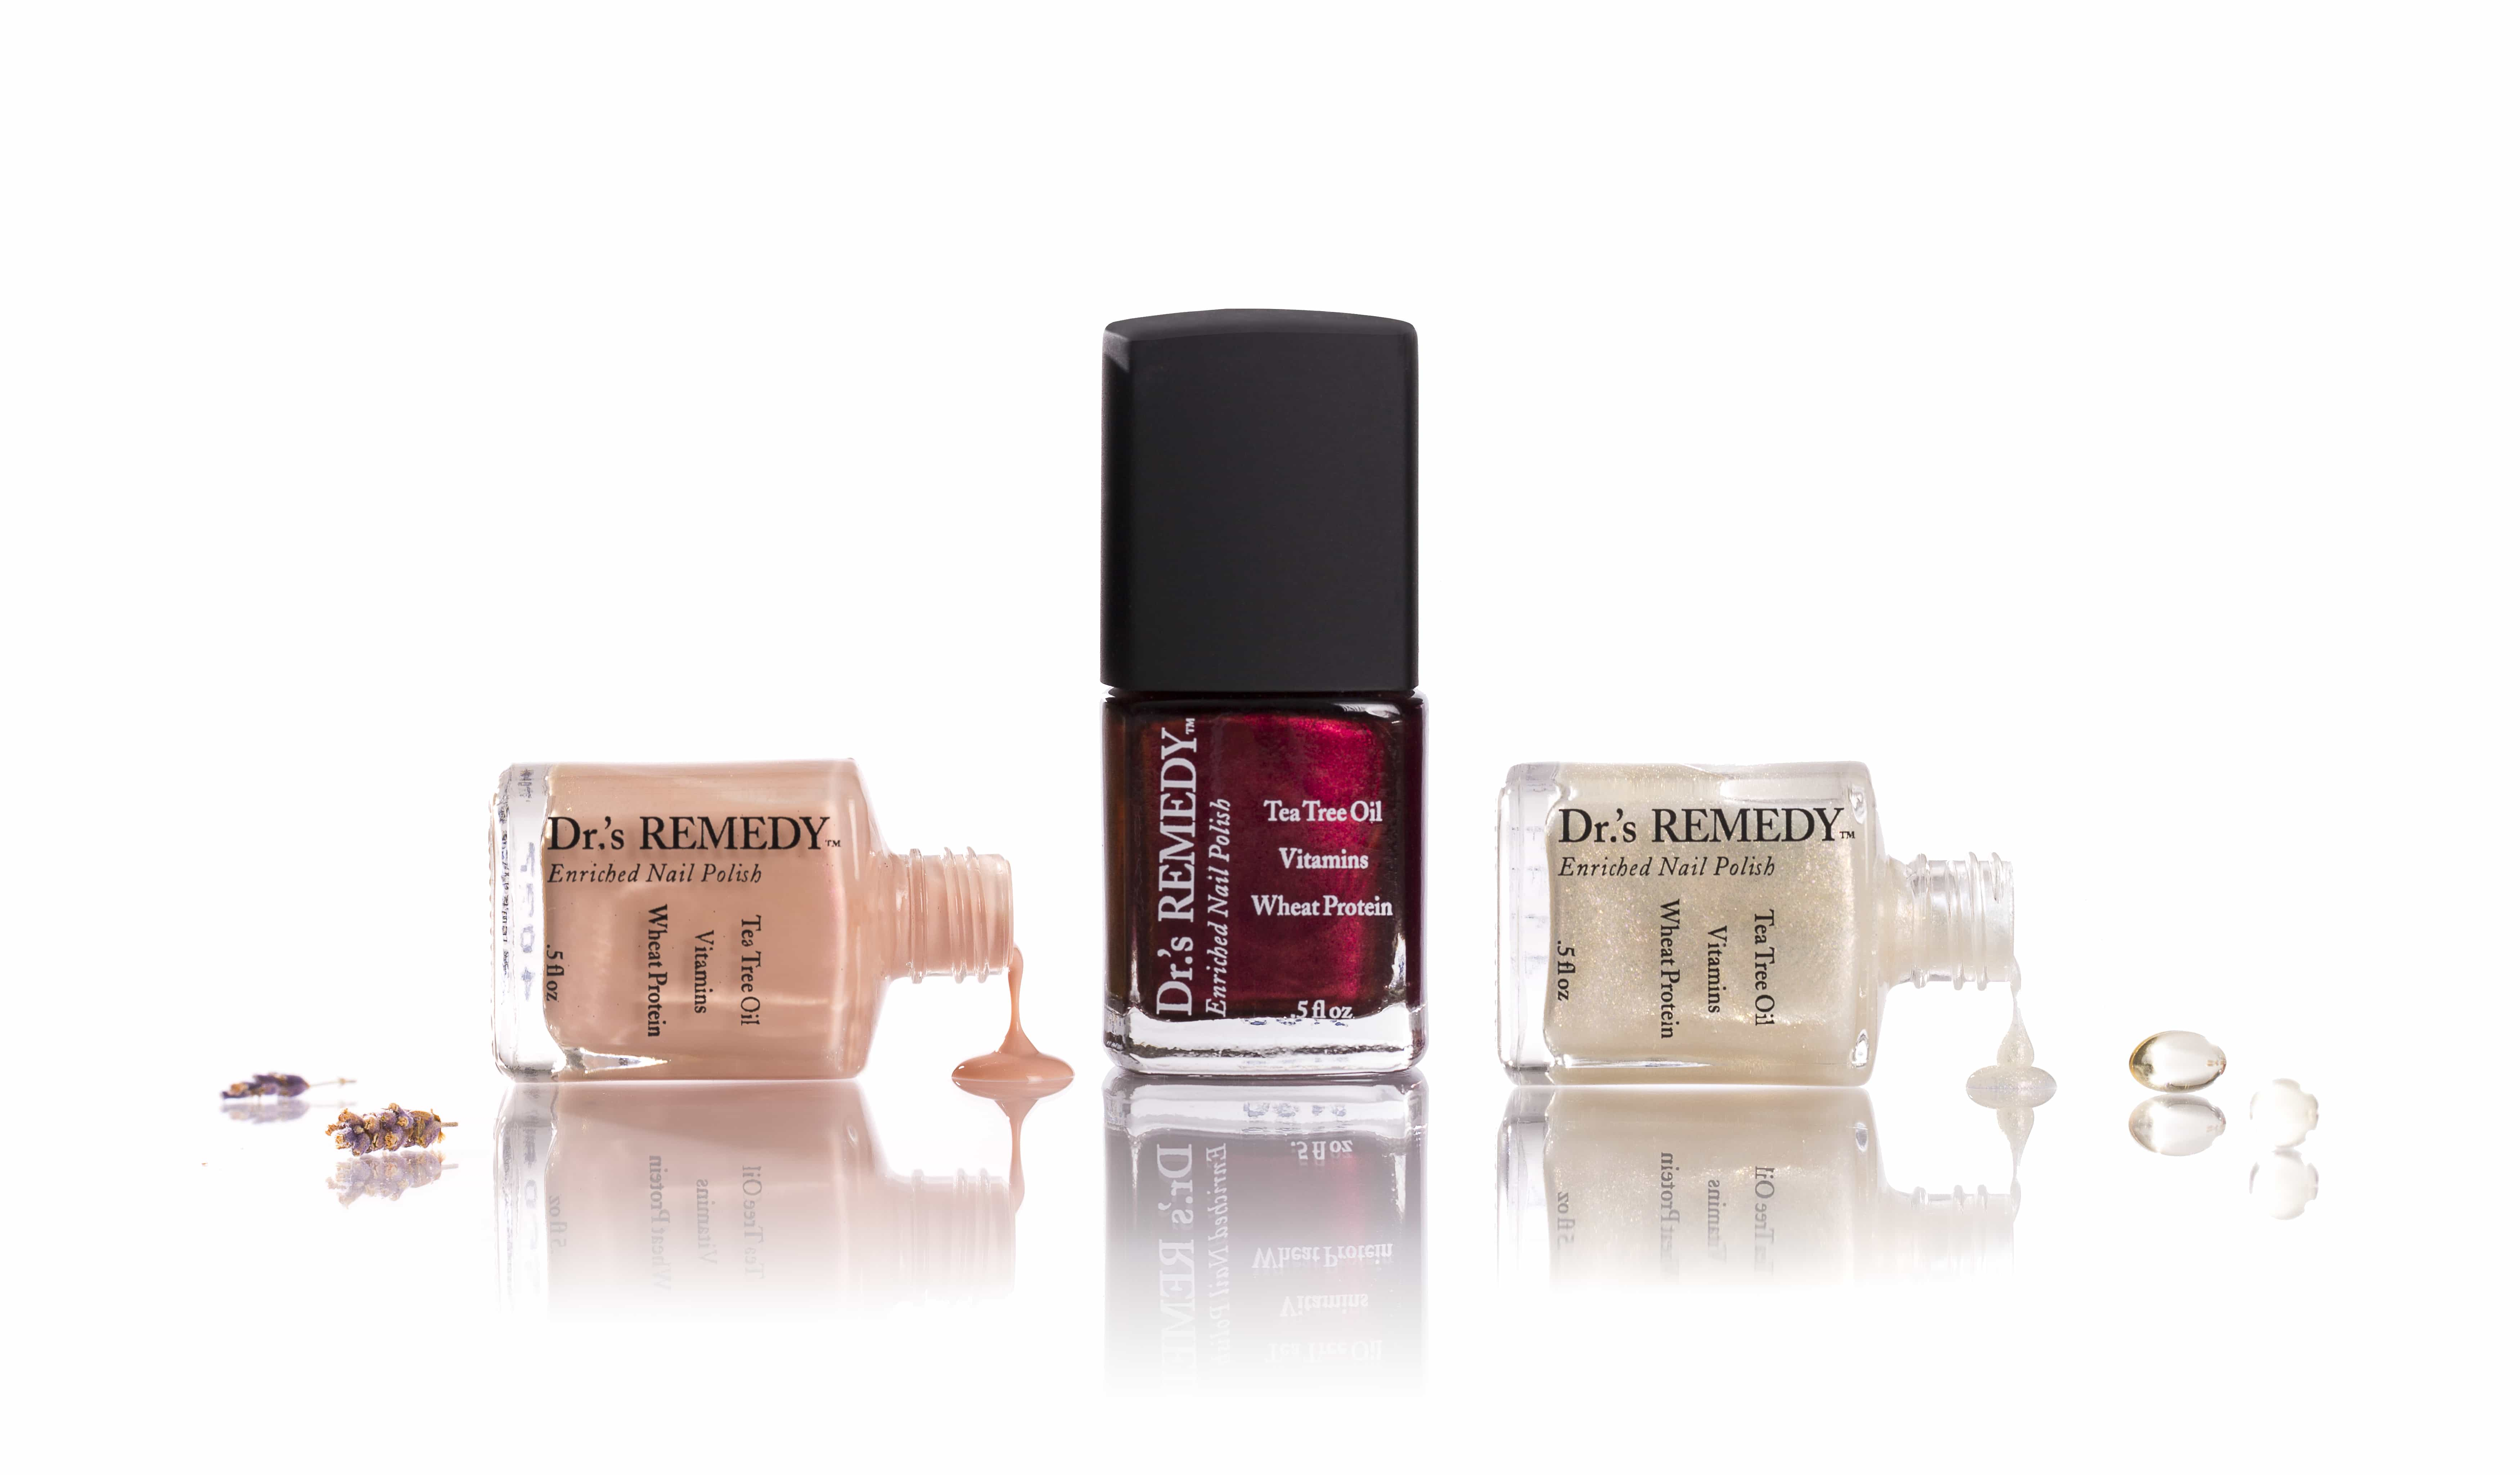 Dr S Remedy 174 Enriched Nail Care Nail Polish Bexley Podiatry Clinic